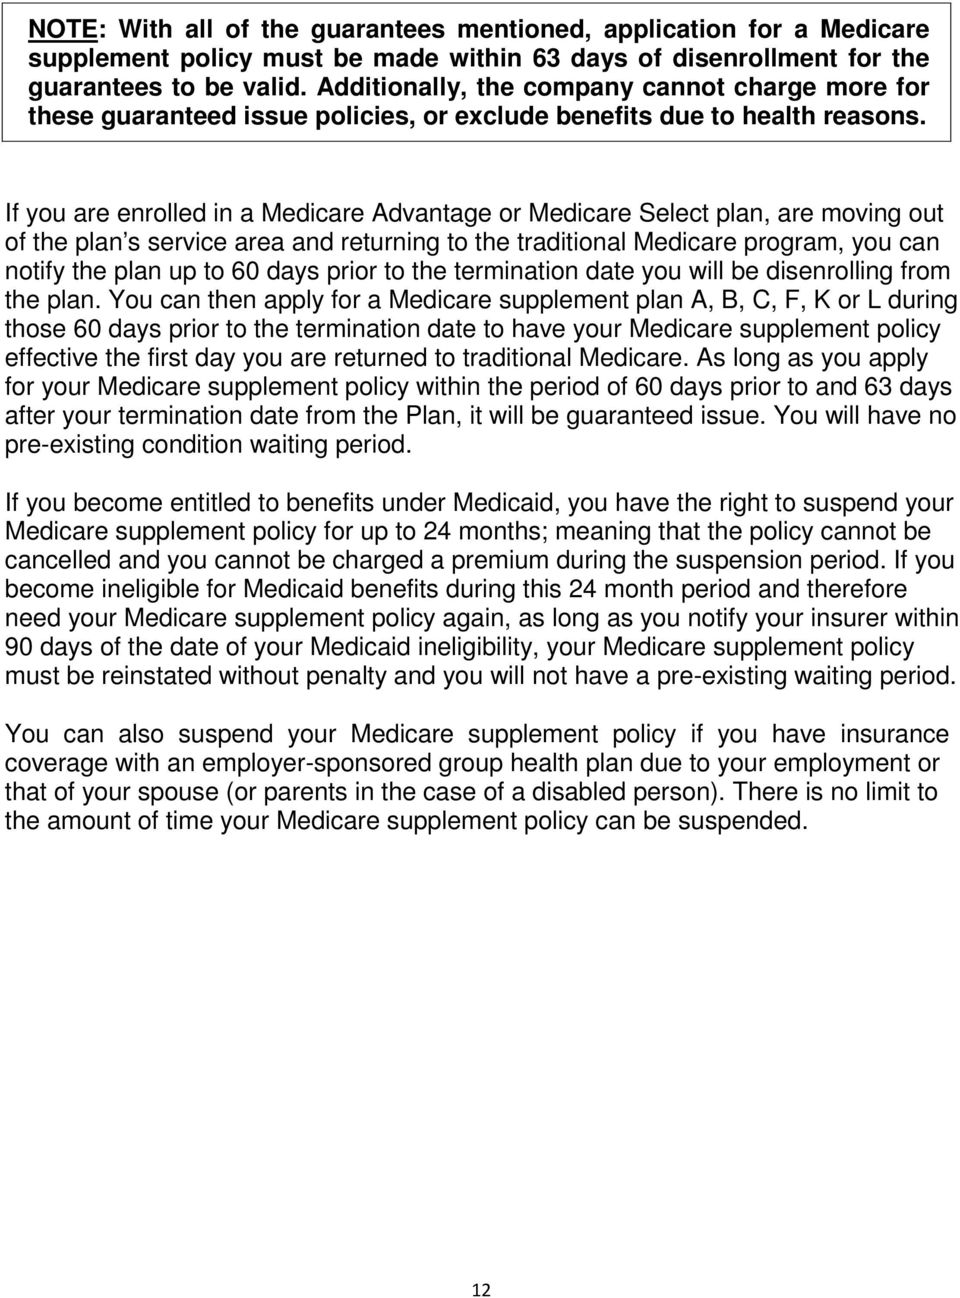 If you are enrolled in a Medicare Advantage or Medicare Select plan, are moving out of the plan s service area and returning to the traditional Medicare program, you can notify the plan up to 60 days